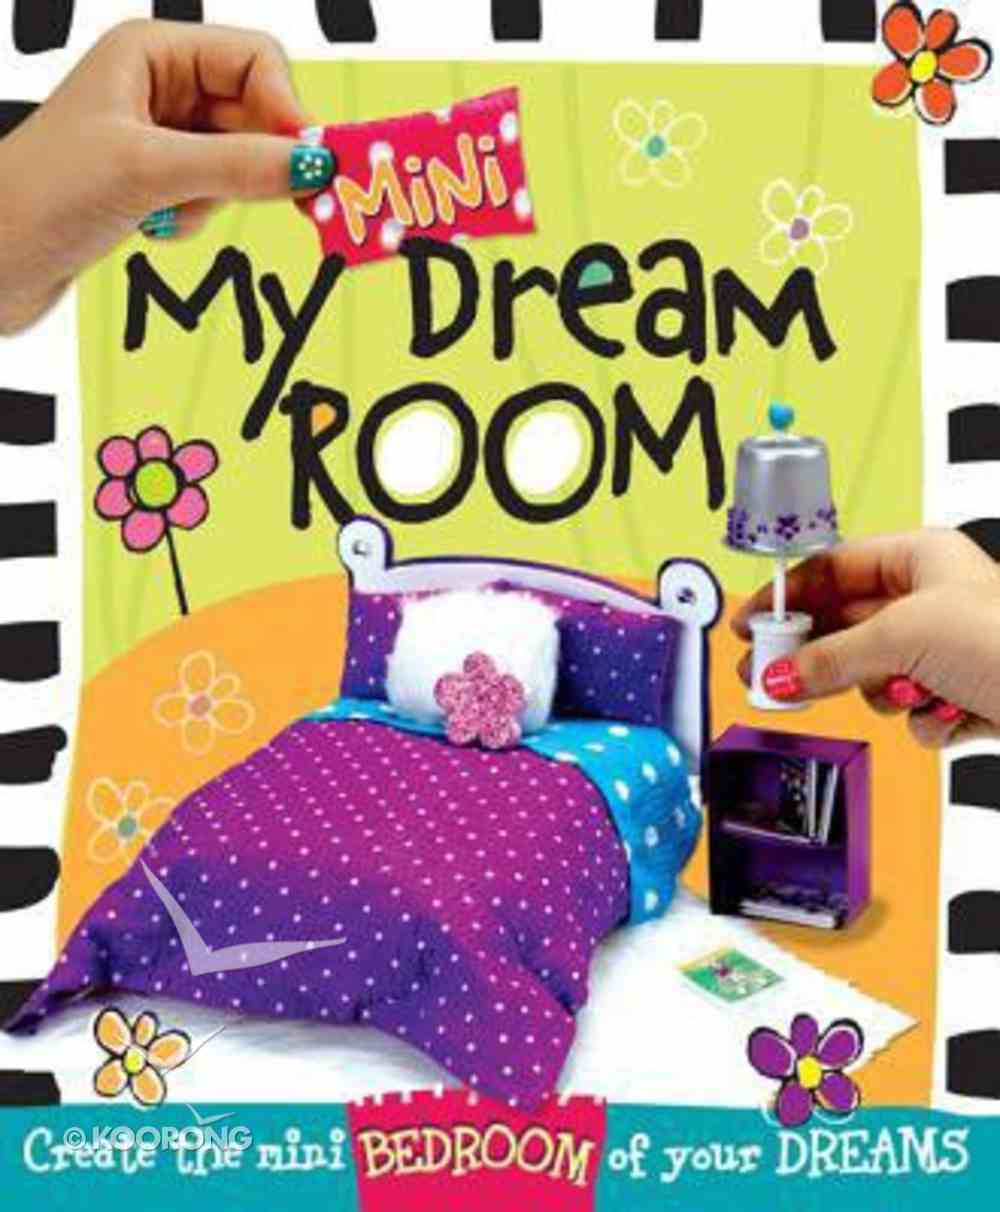 My Mini Dream Room: Create the Mini Bedroom of Your Dreams Paperback